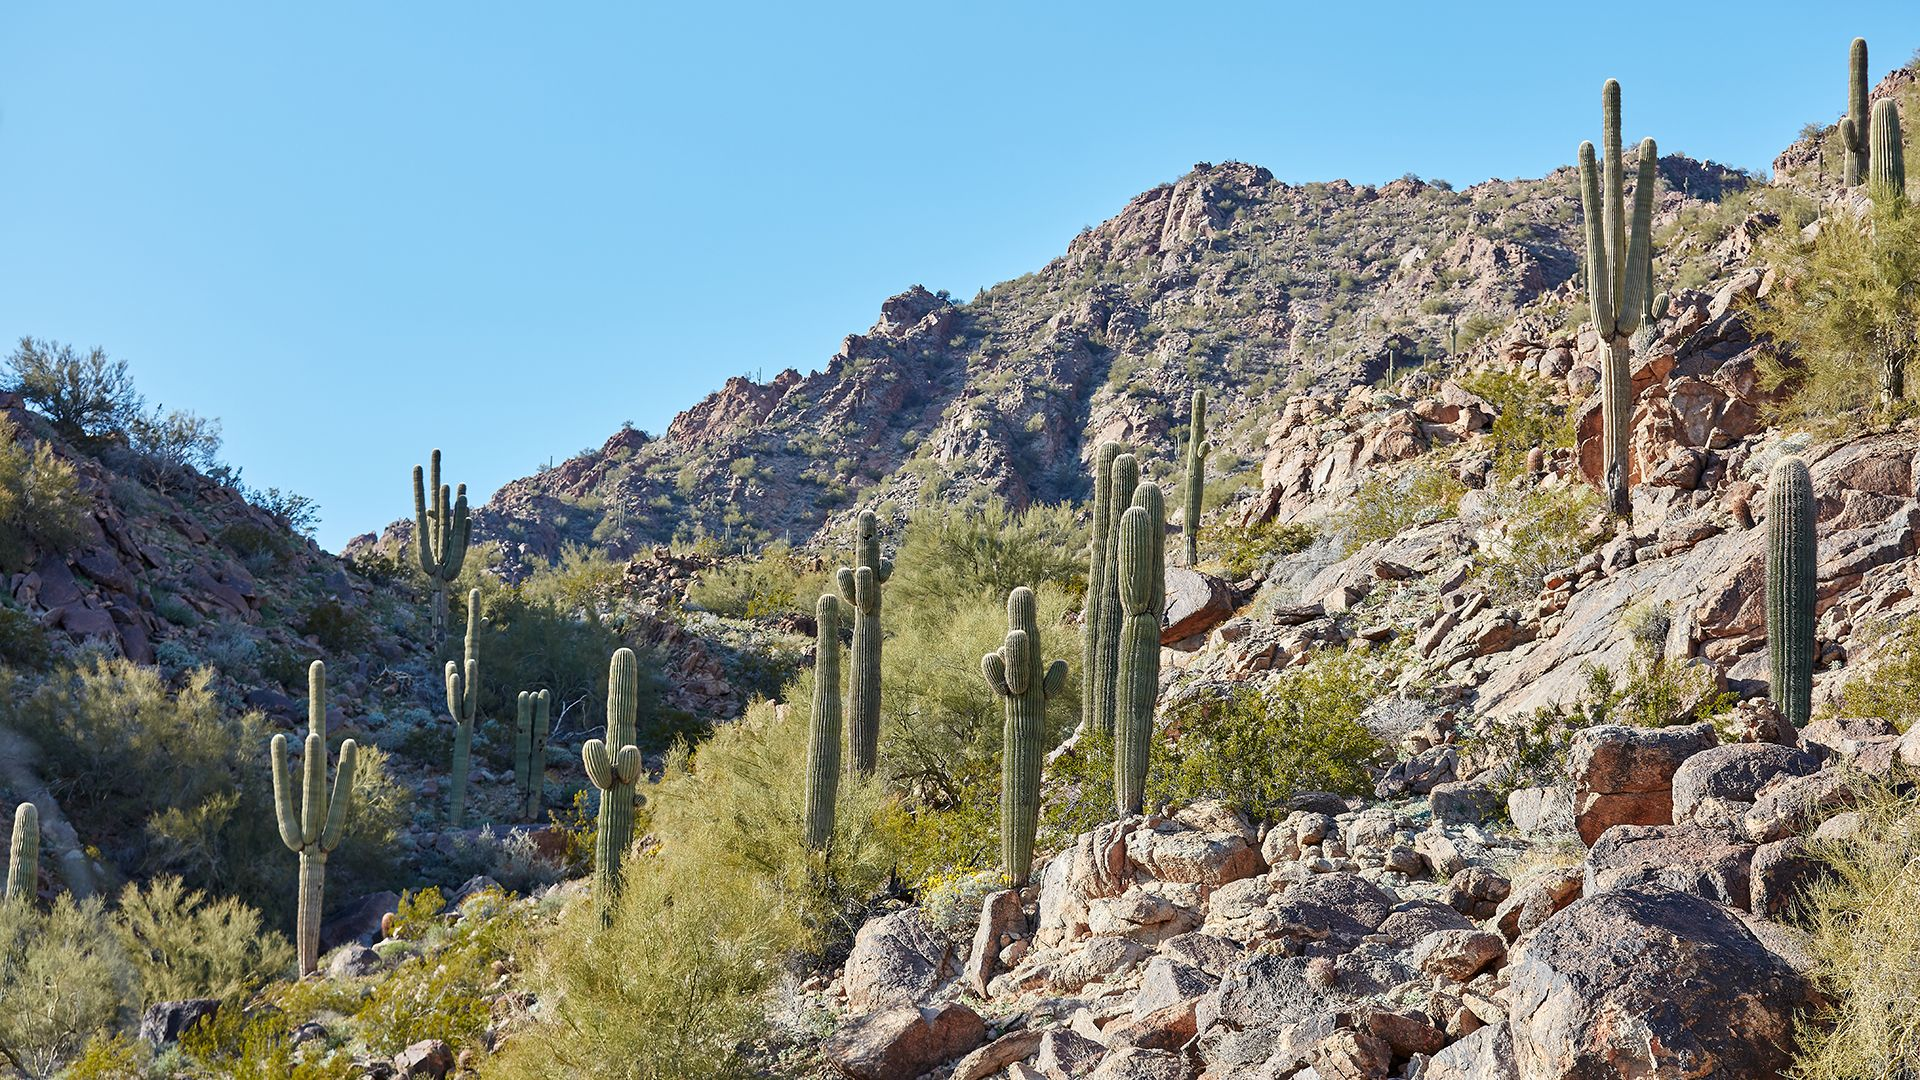 Observe the desert's wild flora and fauna, and details of the landscape's natural formations.